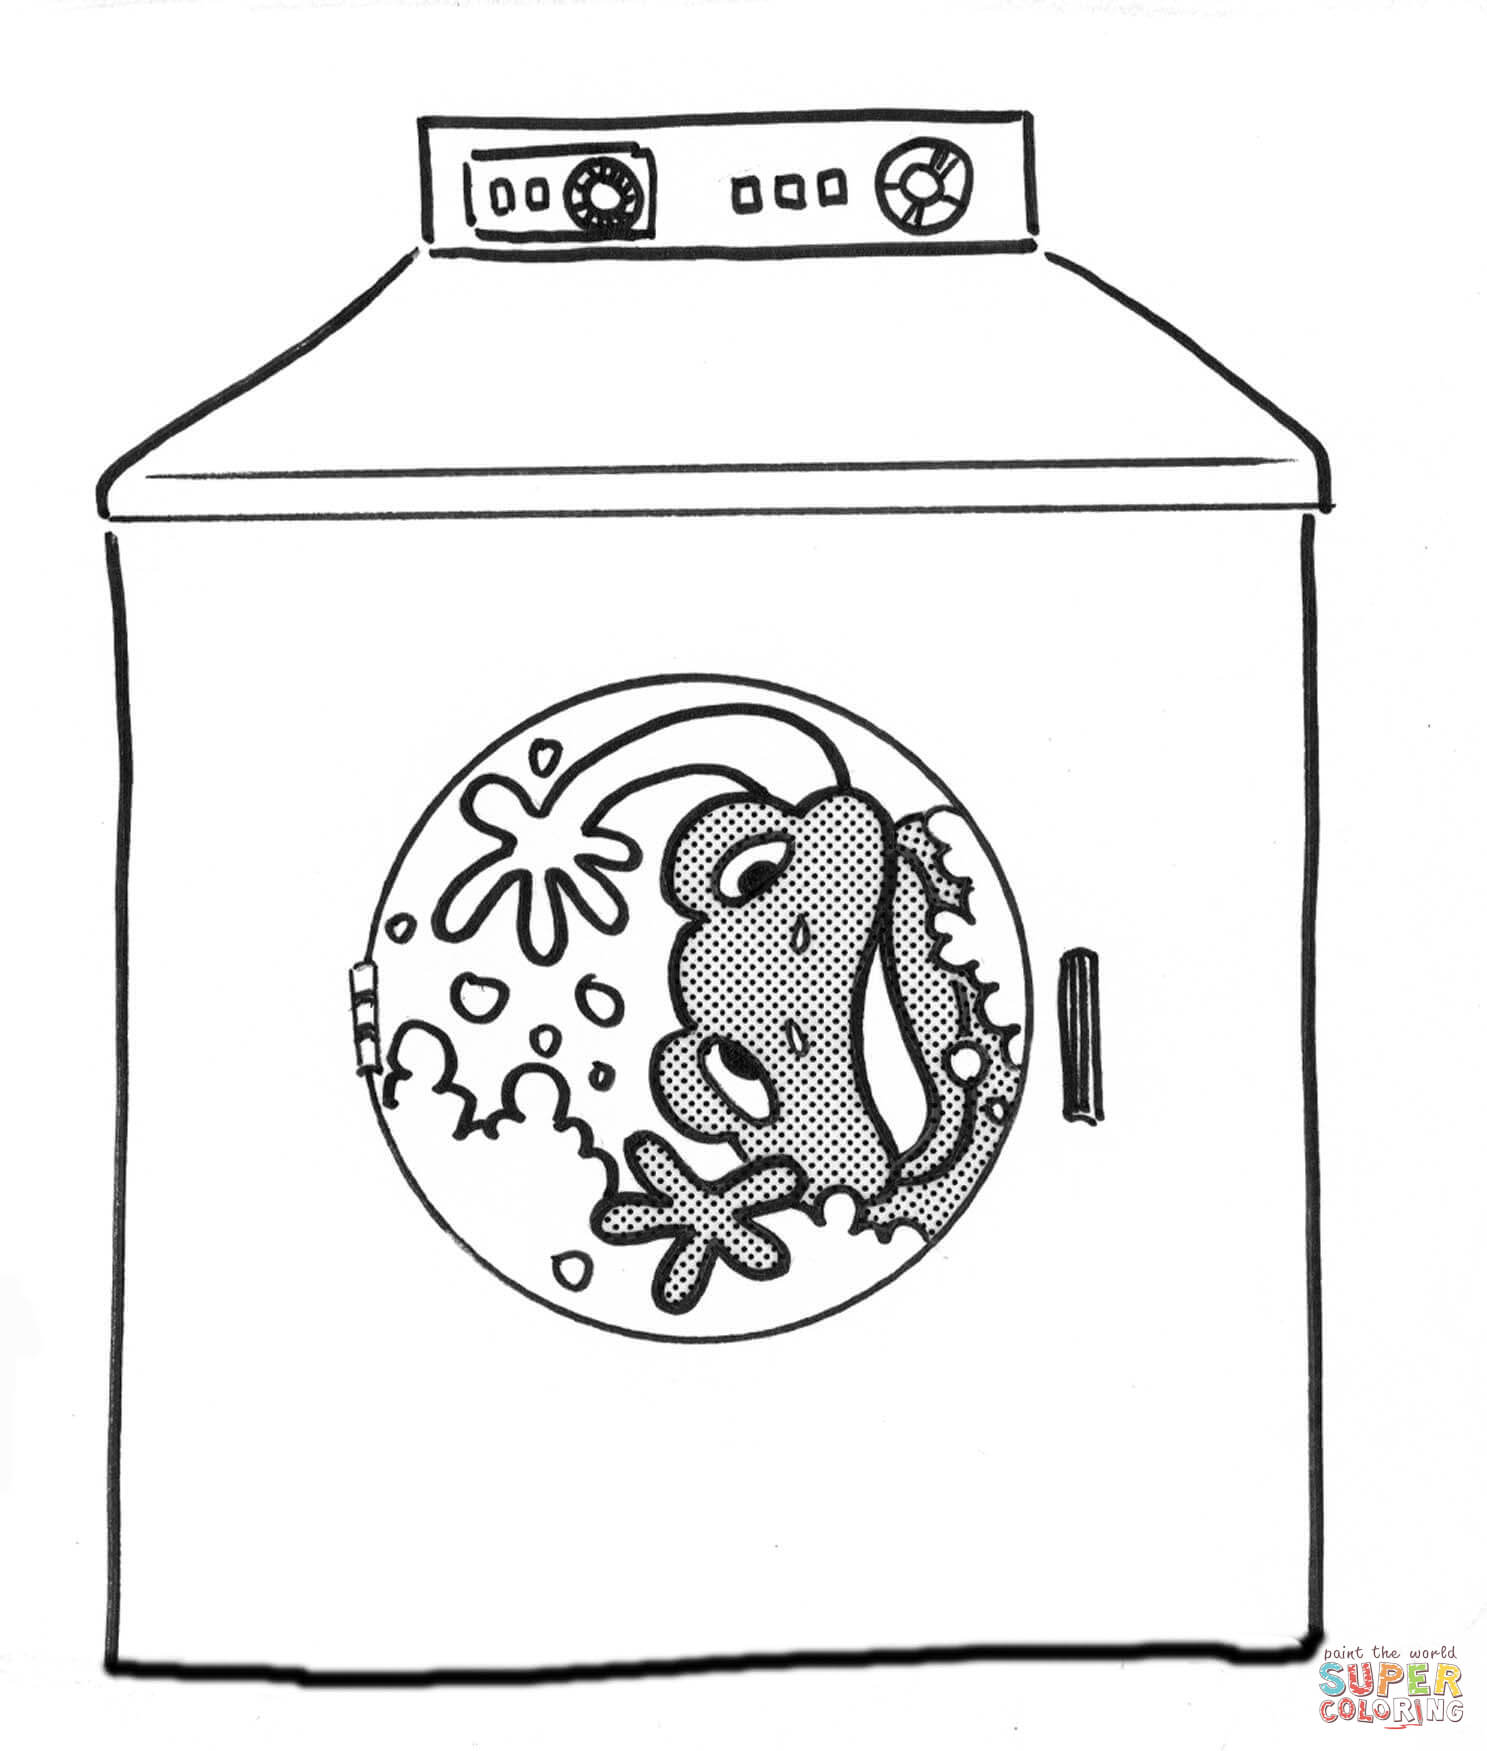 Frog In The Washing Machine Coloring Page